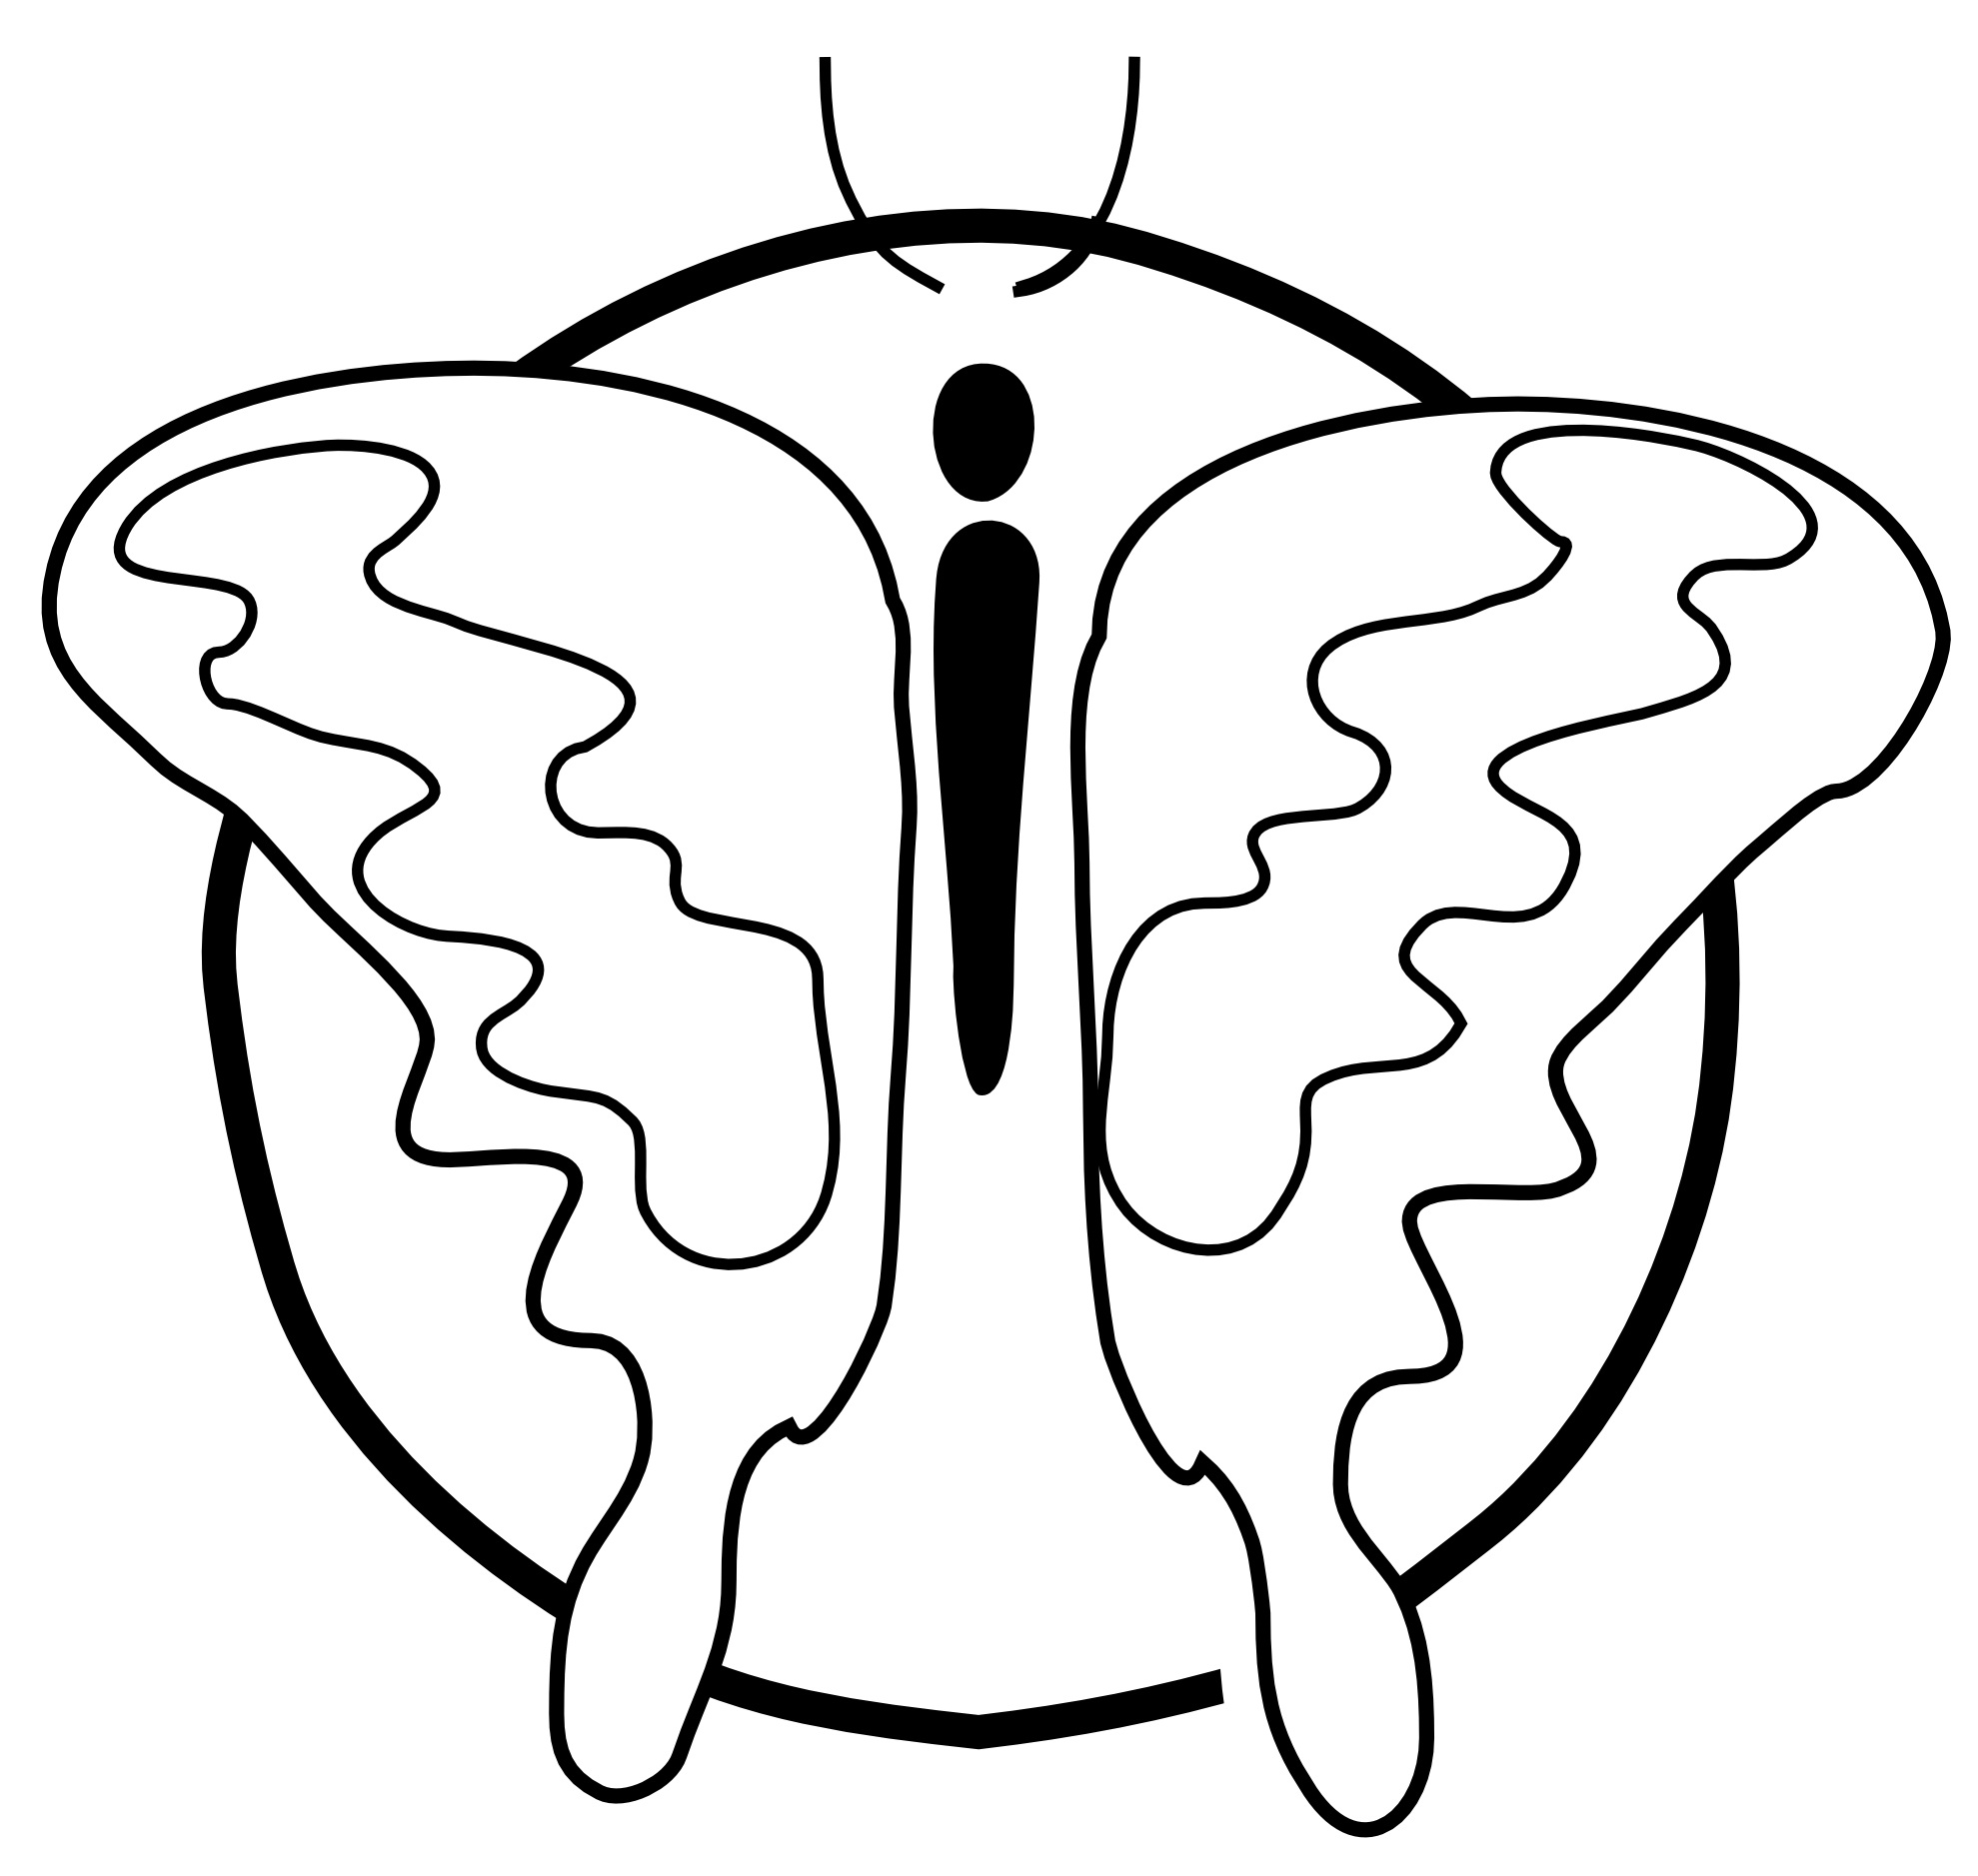 printable butterfly coloring page free printable butterfly coloring pages for kids butterfly page coloring printable